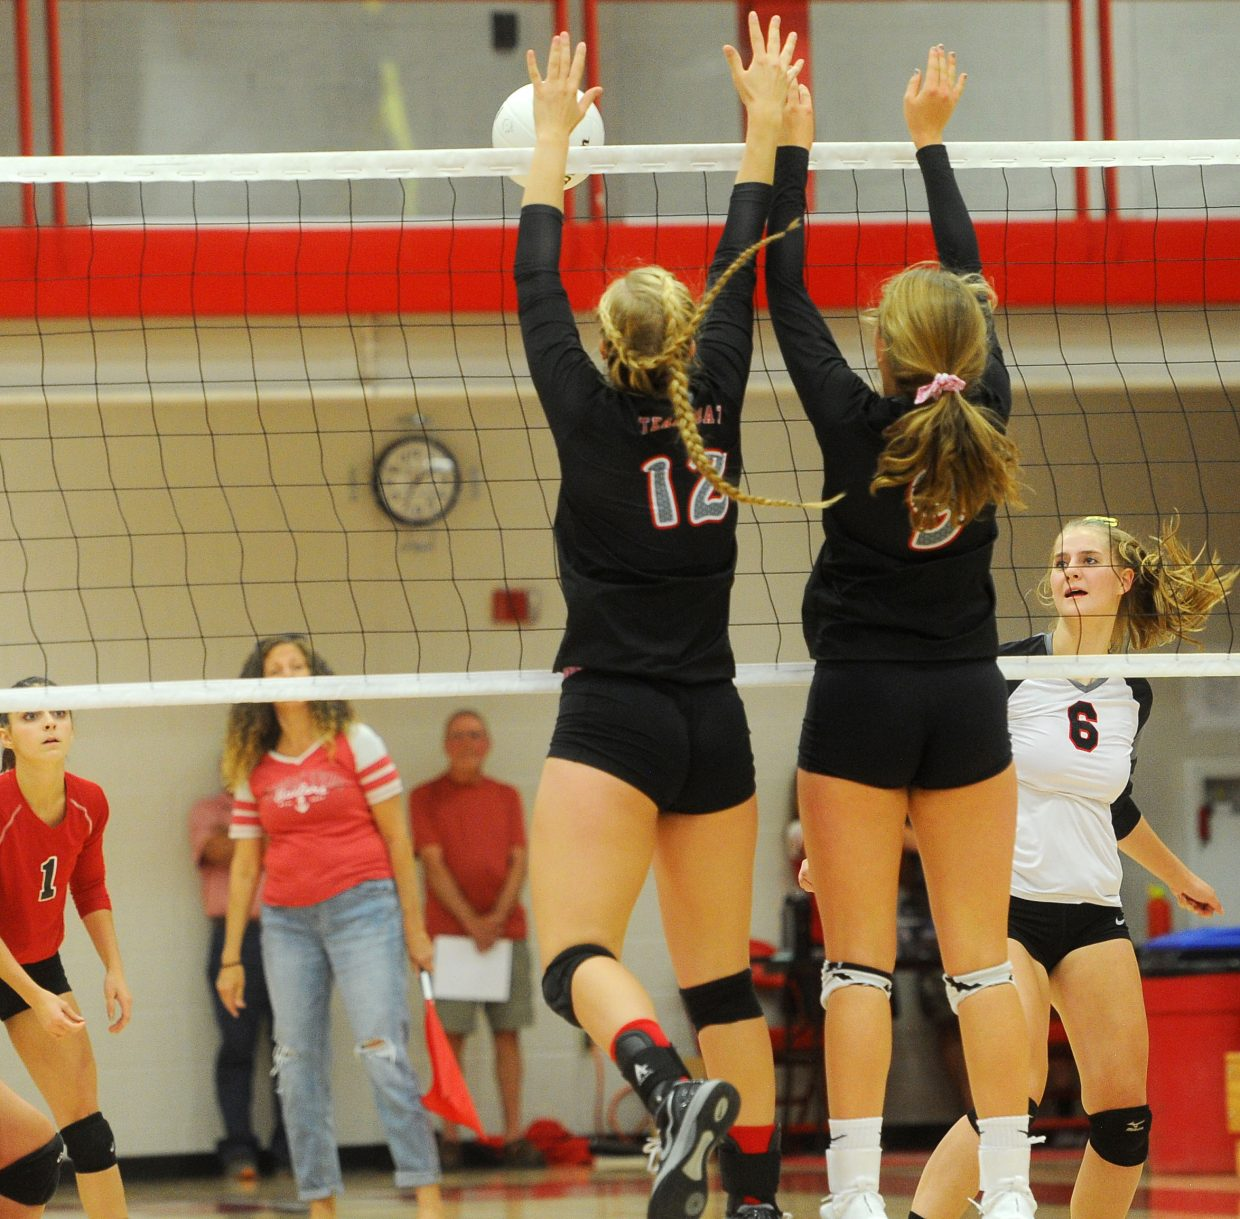 Steamboat Springs seniors Avery Harrington, left, and Abi Berlet block a hit in the match against Eagle Valley at Steamboat Springs High School on Sept. 13.